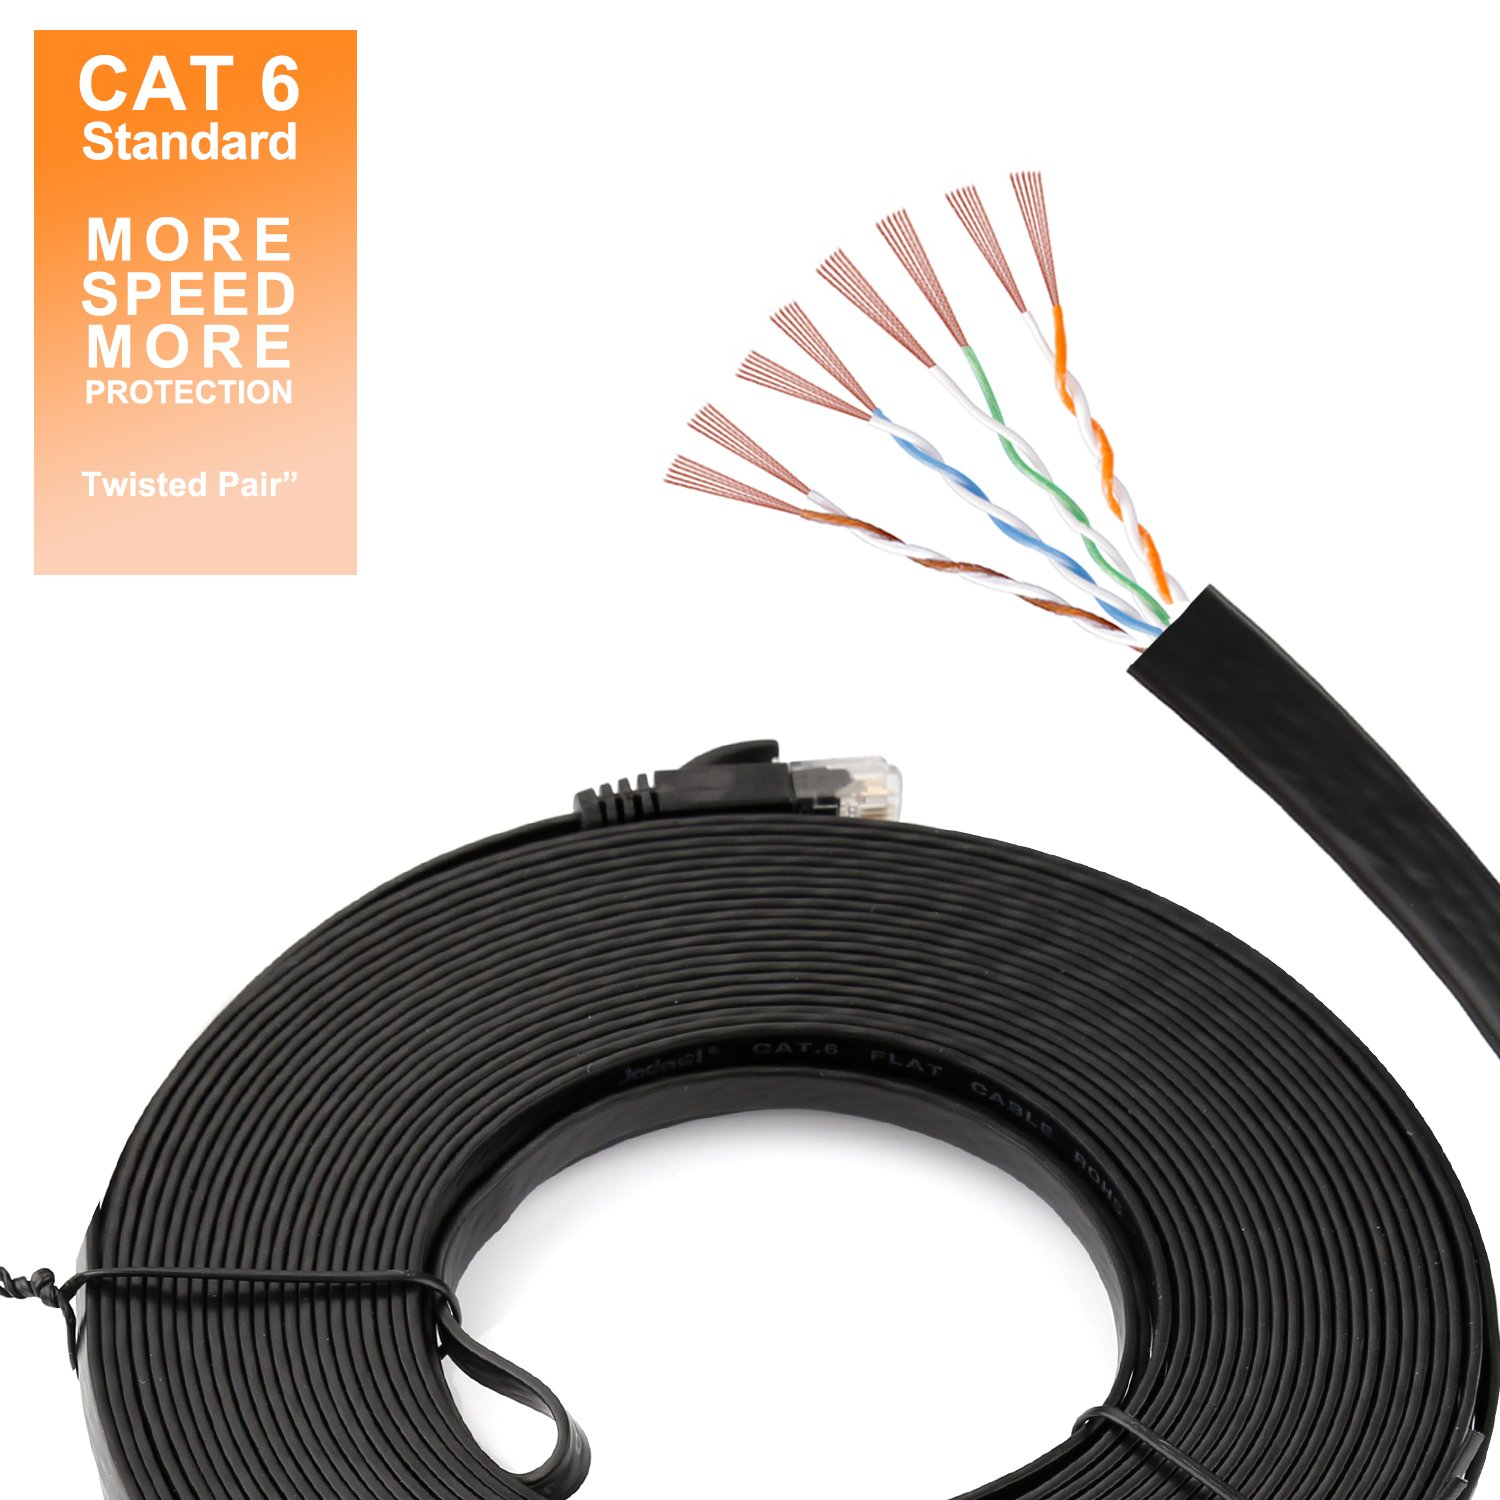 Cat 6 Wiring Bundle Diagram Opinions About For Internet Amazon Com Ethernet Cable 5 Ft Black Pack Flat Rh Pdf